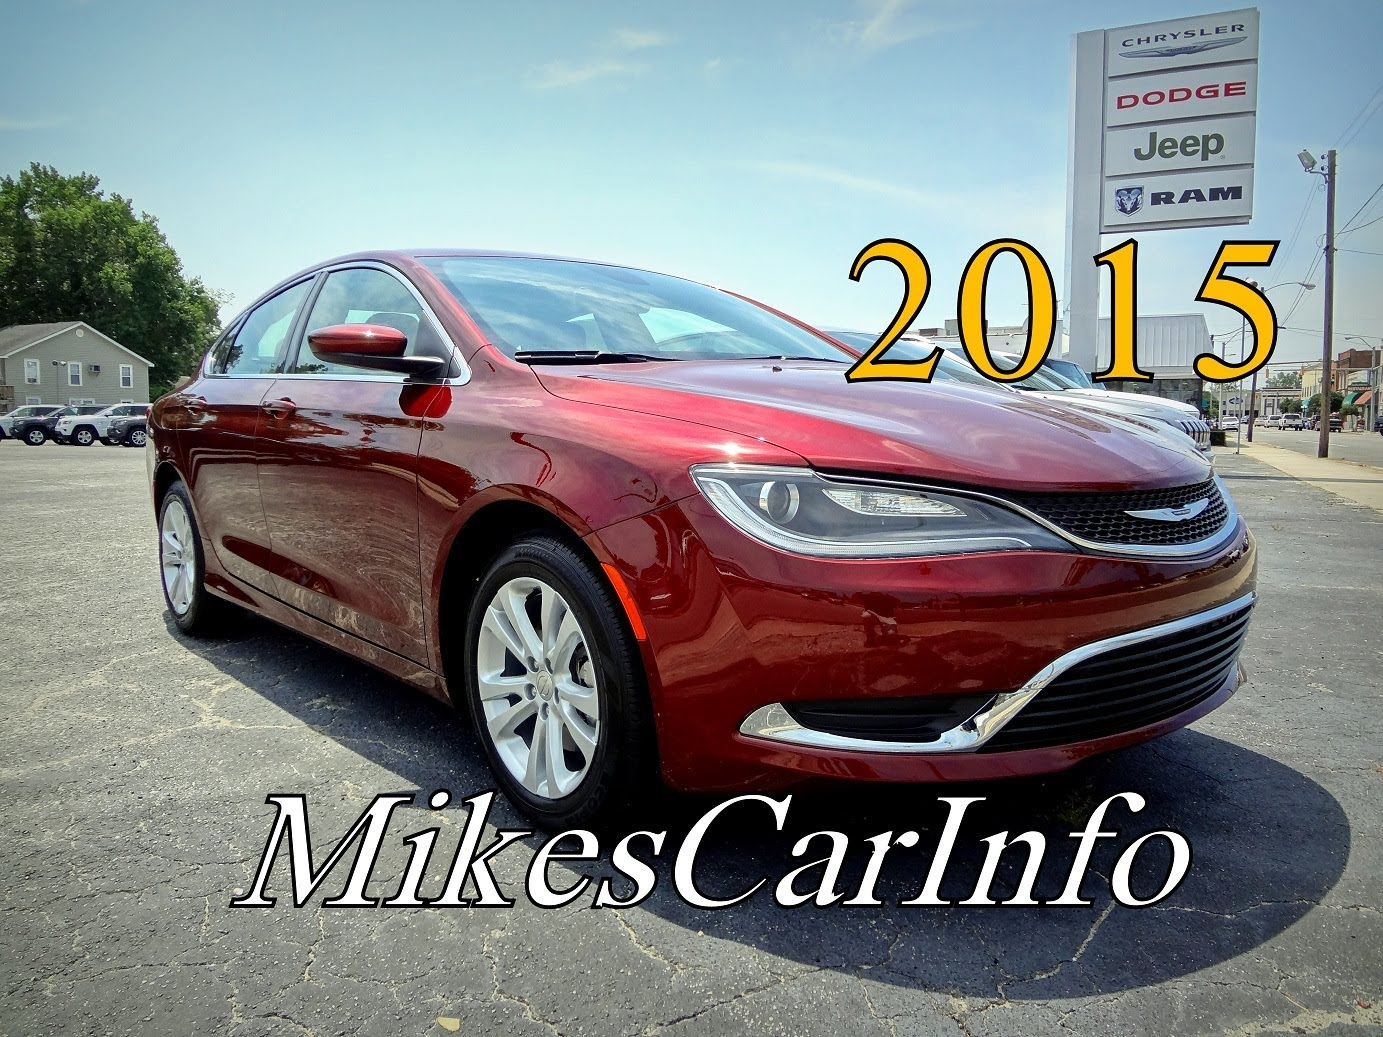 2015 Chrysler 200limited Car Review Video Tampa Florida